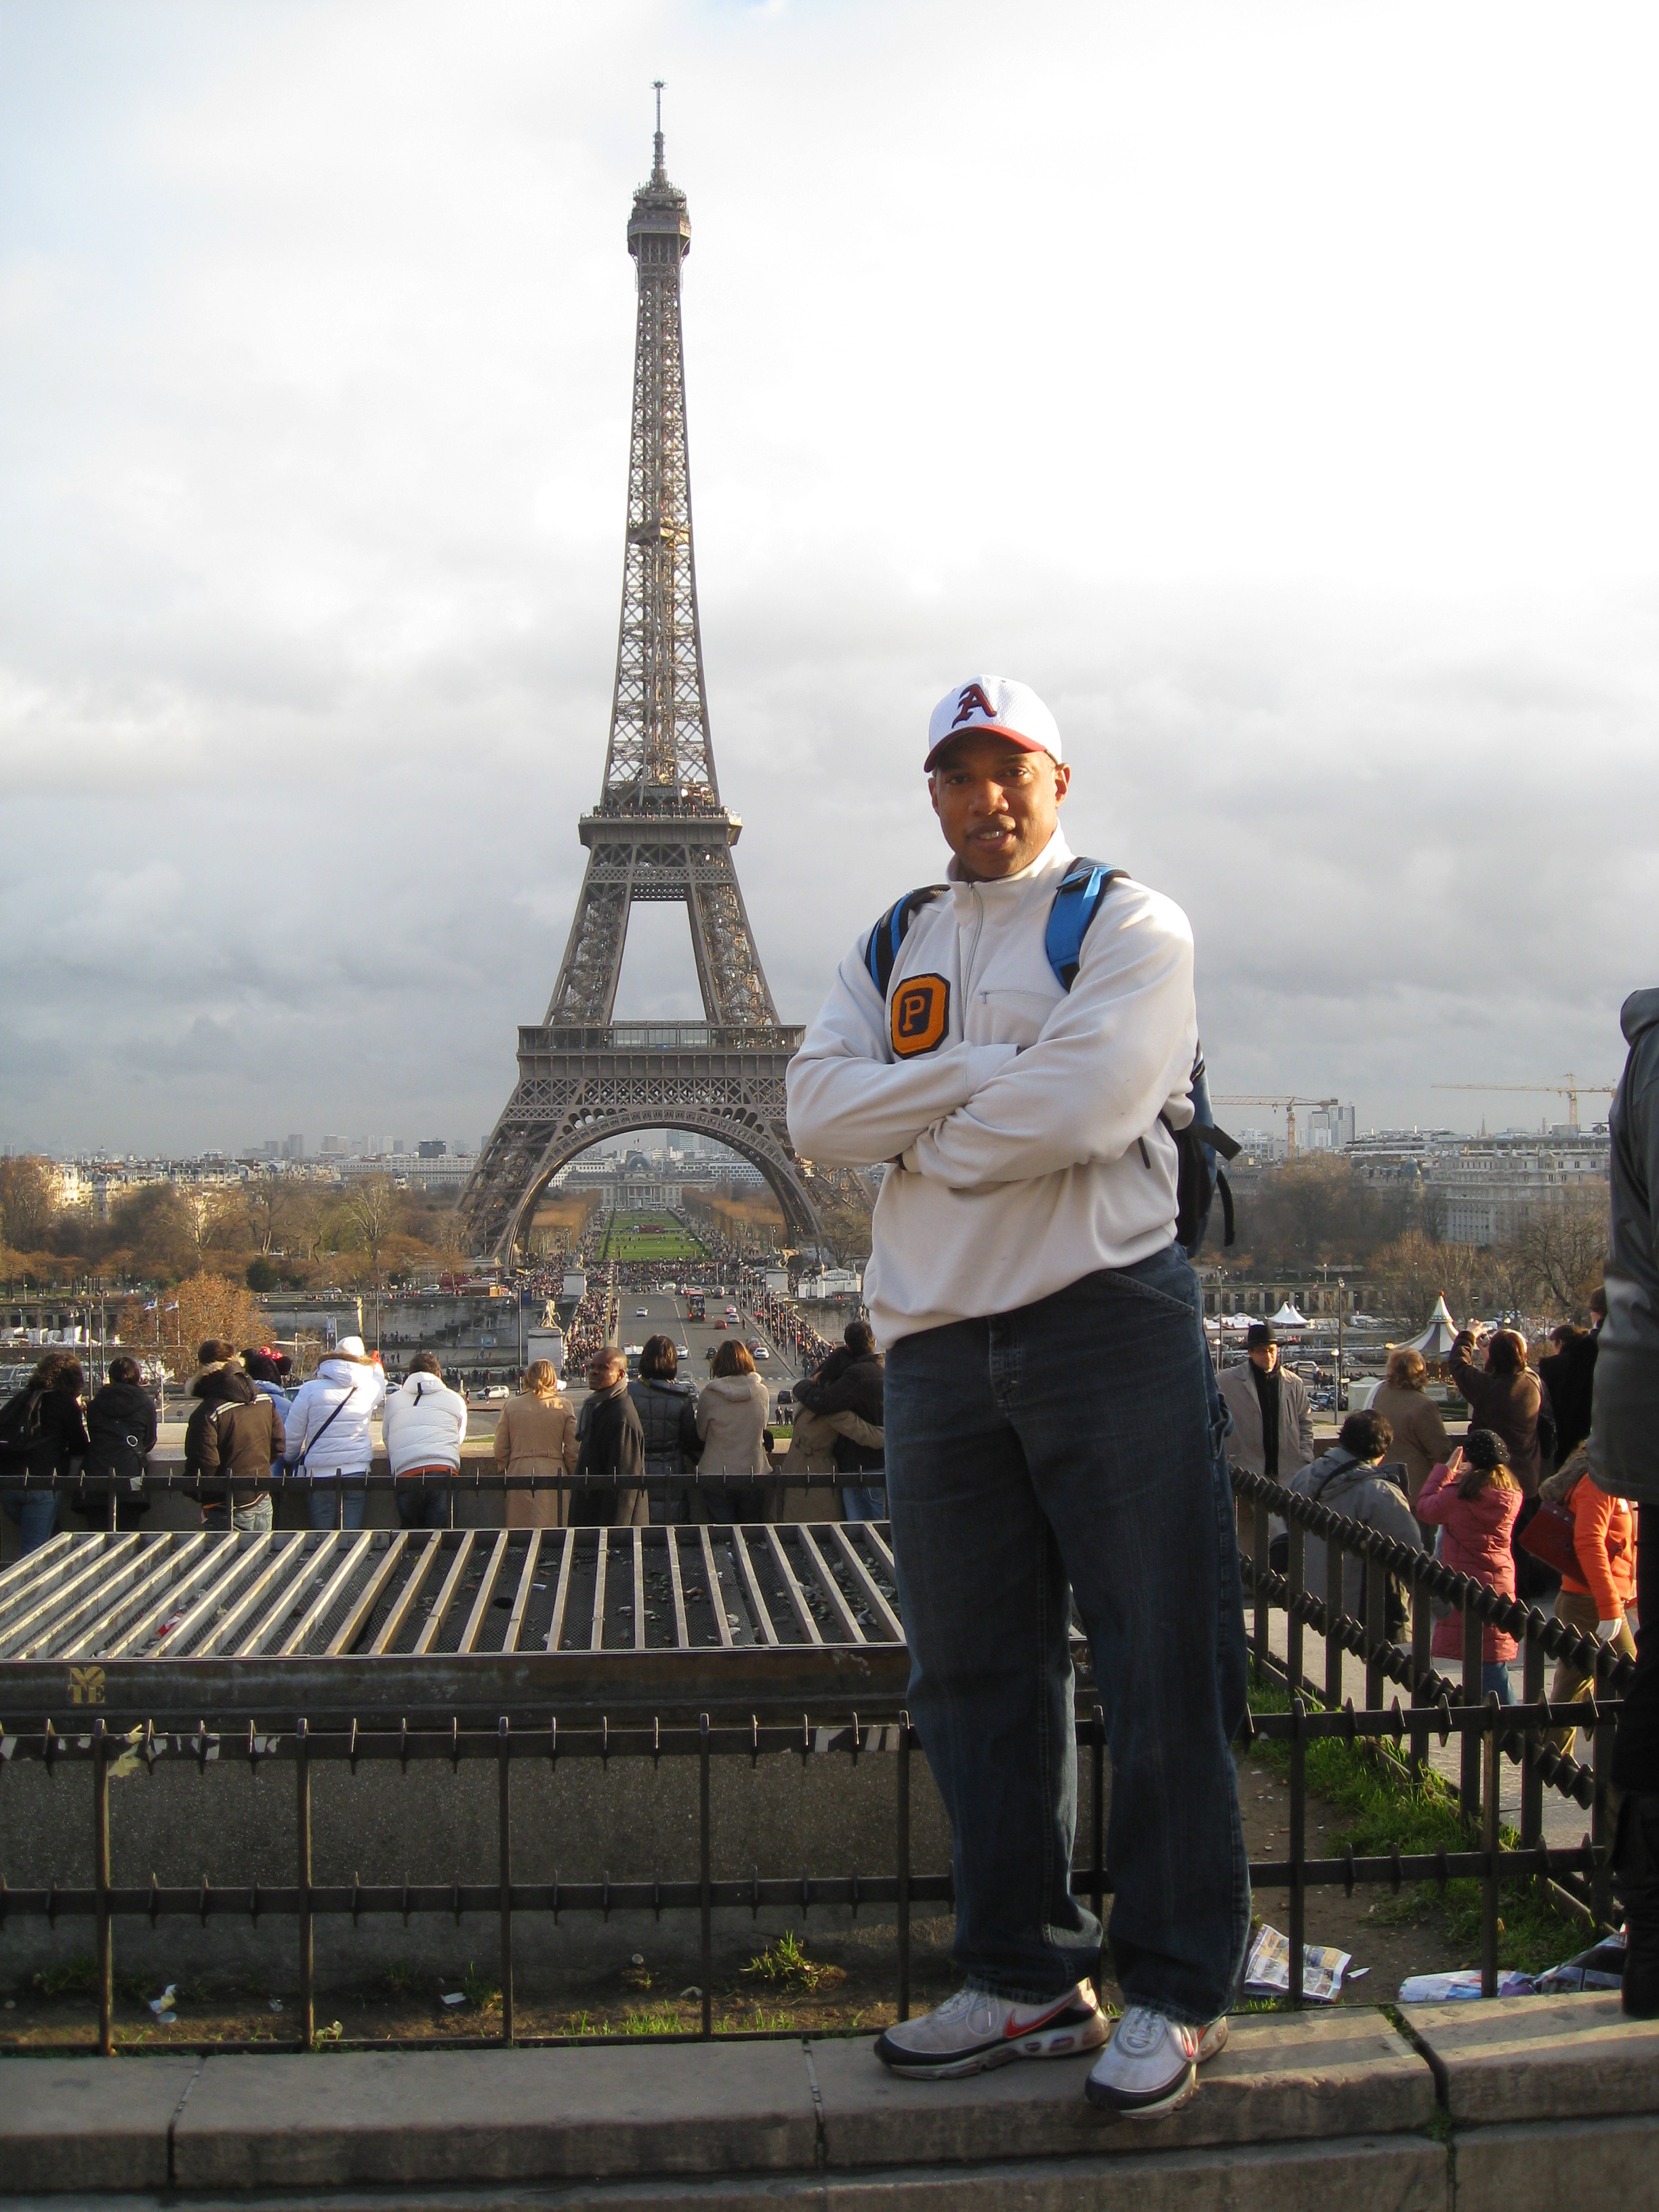 John at the Eiffel Tower